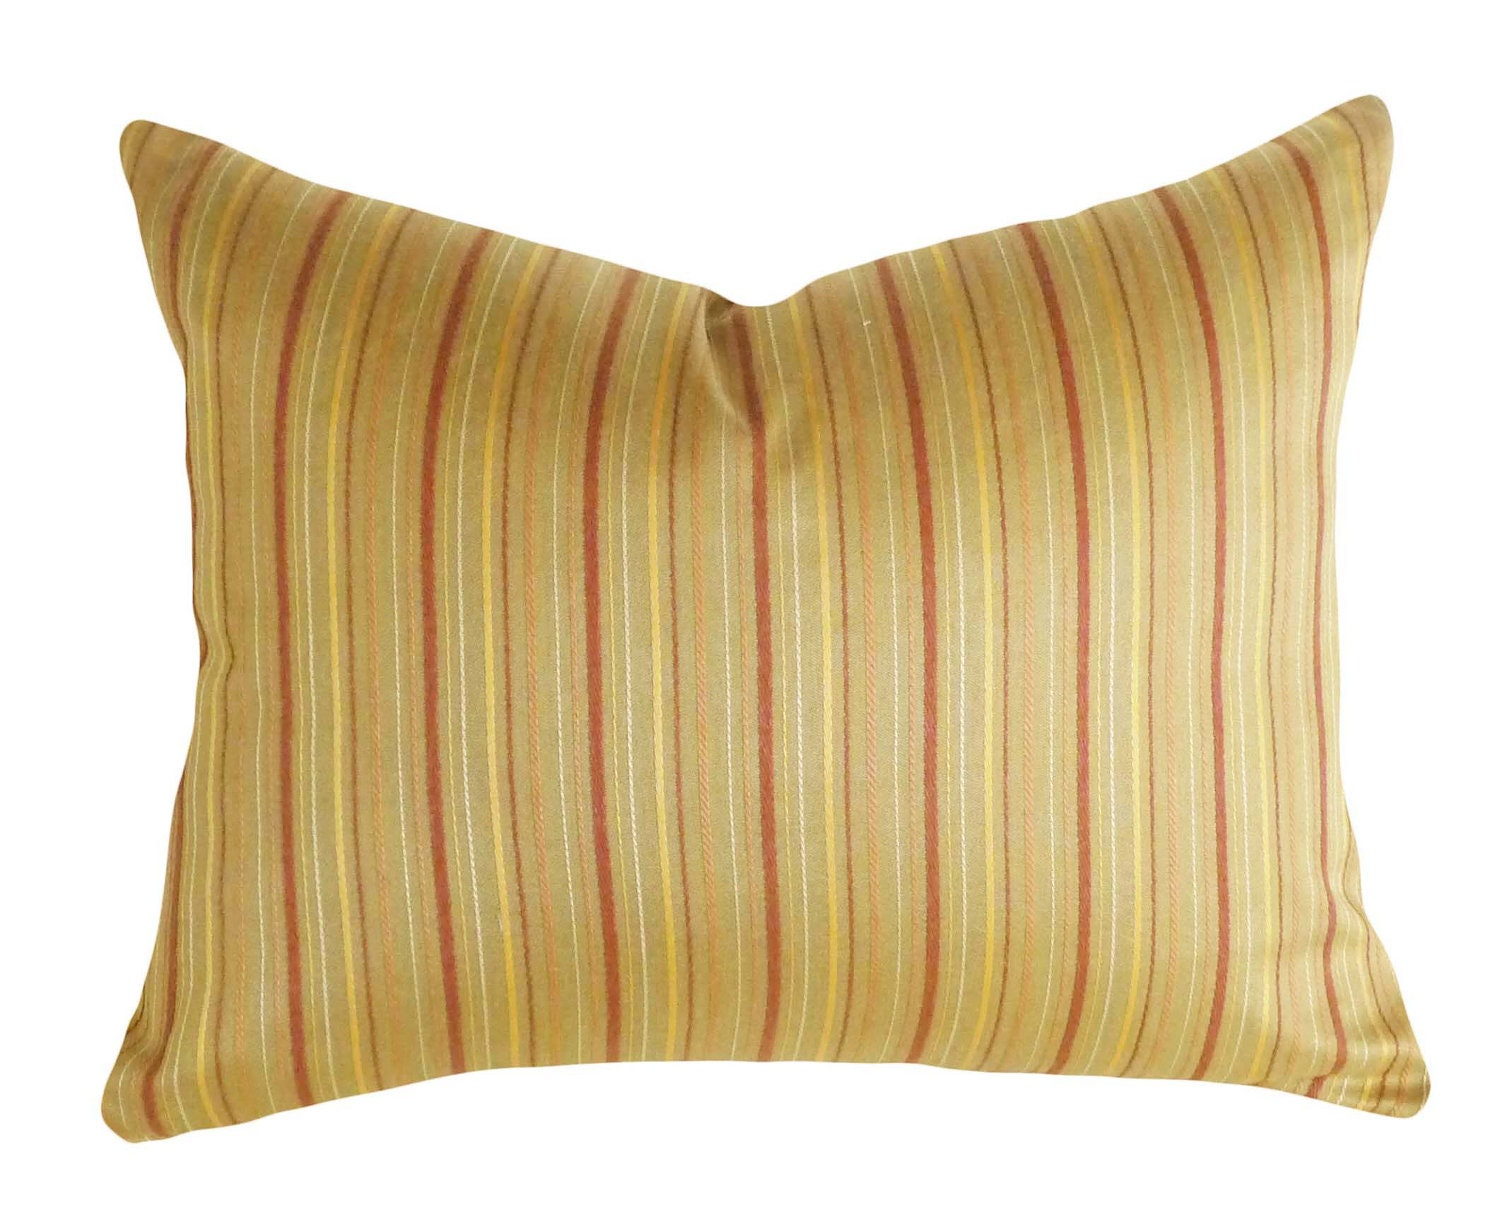 Decorative Pillows With Stripes : Colorful Stripes Pillow Textured Cushion Cover by PillowThrowDecor